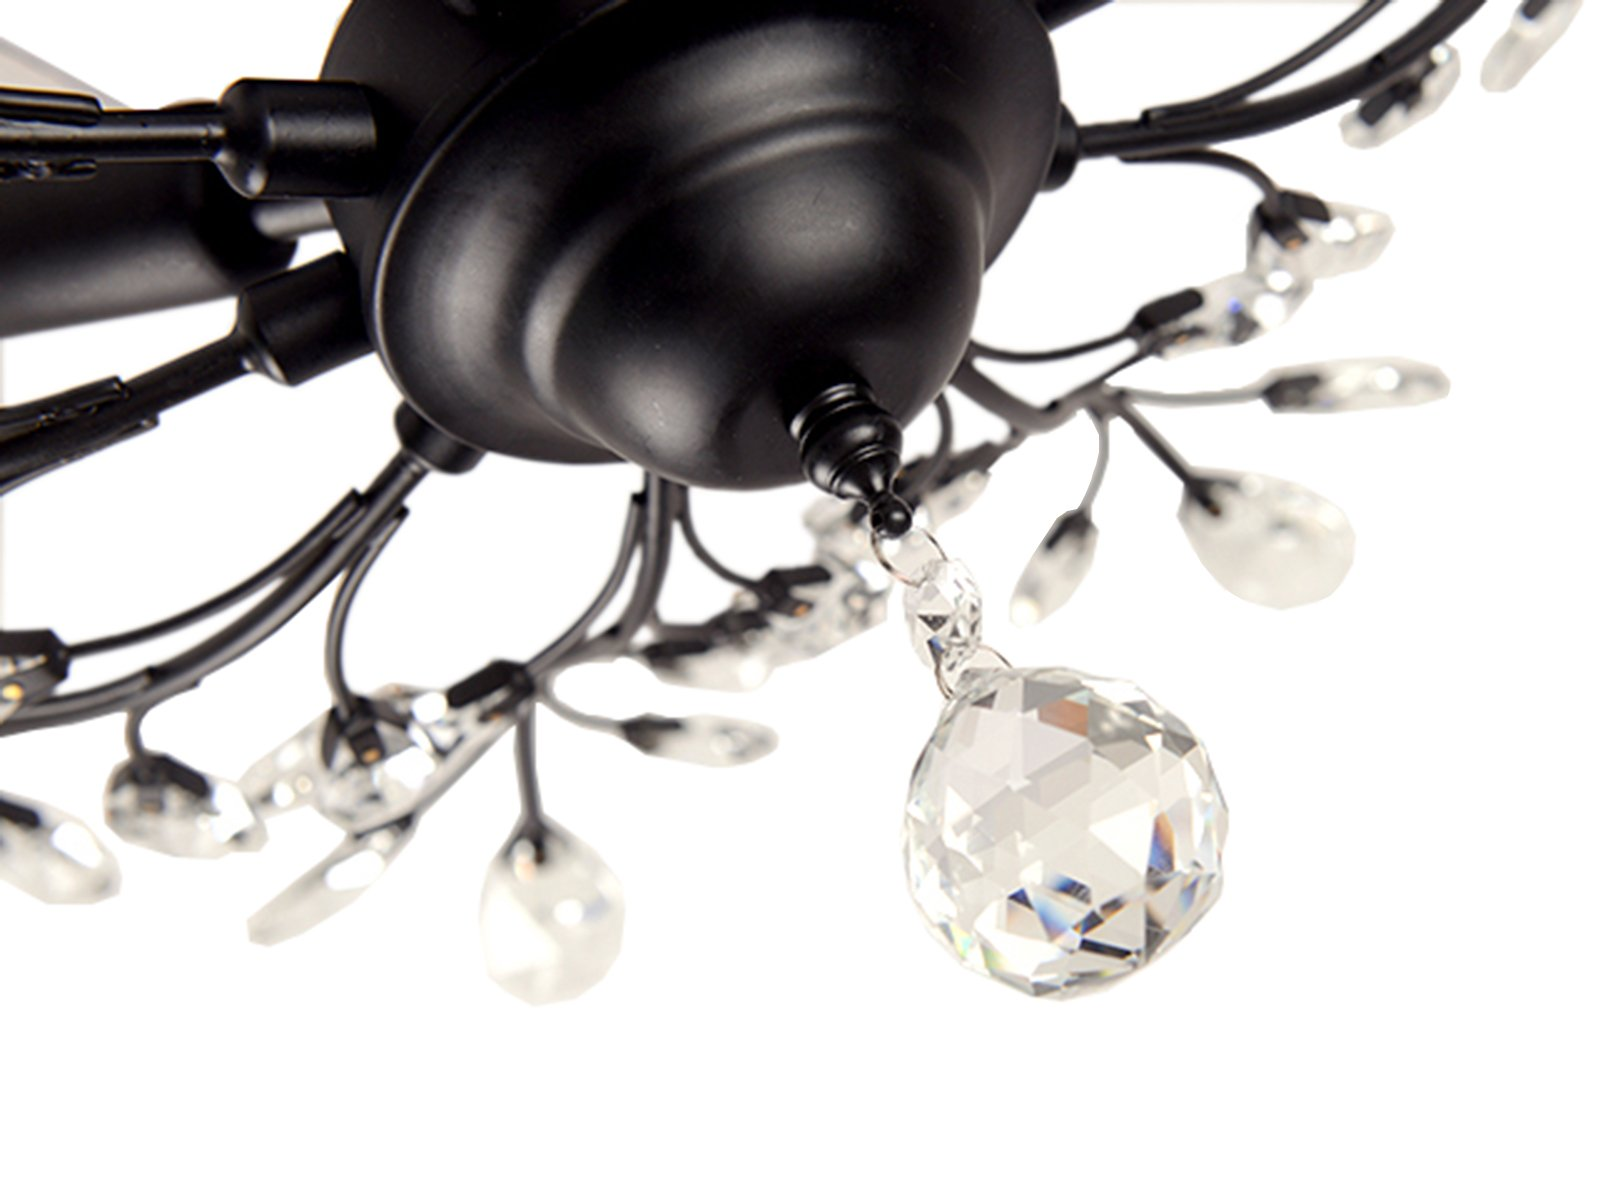 SEOL-LIGHT Vintage Large Crystal Branches Chandeliers Black Ceiling Light Flush Mounted Fixture with 5 Light 200W Large Size by SEOL LIGHT (Image #4)